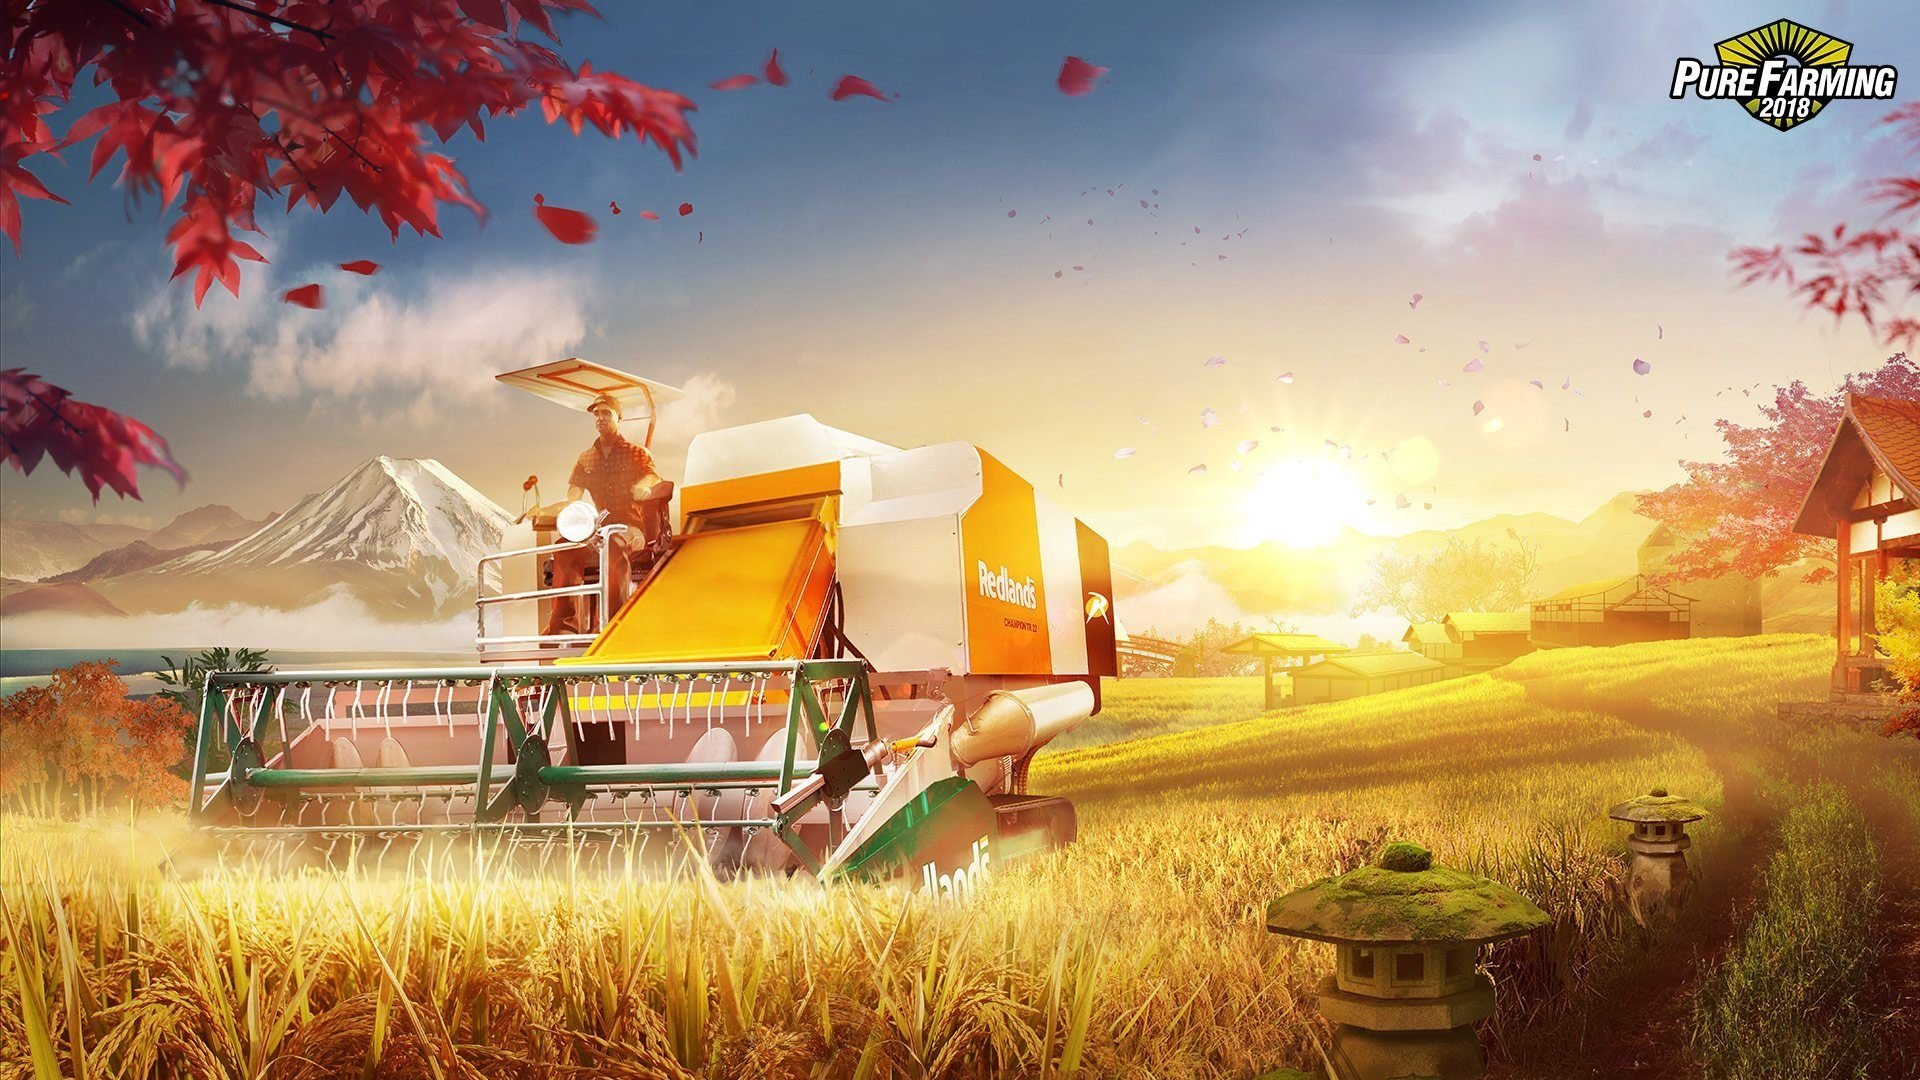 2 Pure Farming 2018 HD Wallpapers Background Images   Wallpaper 1920x1080